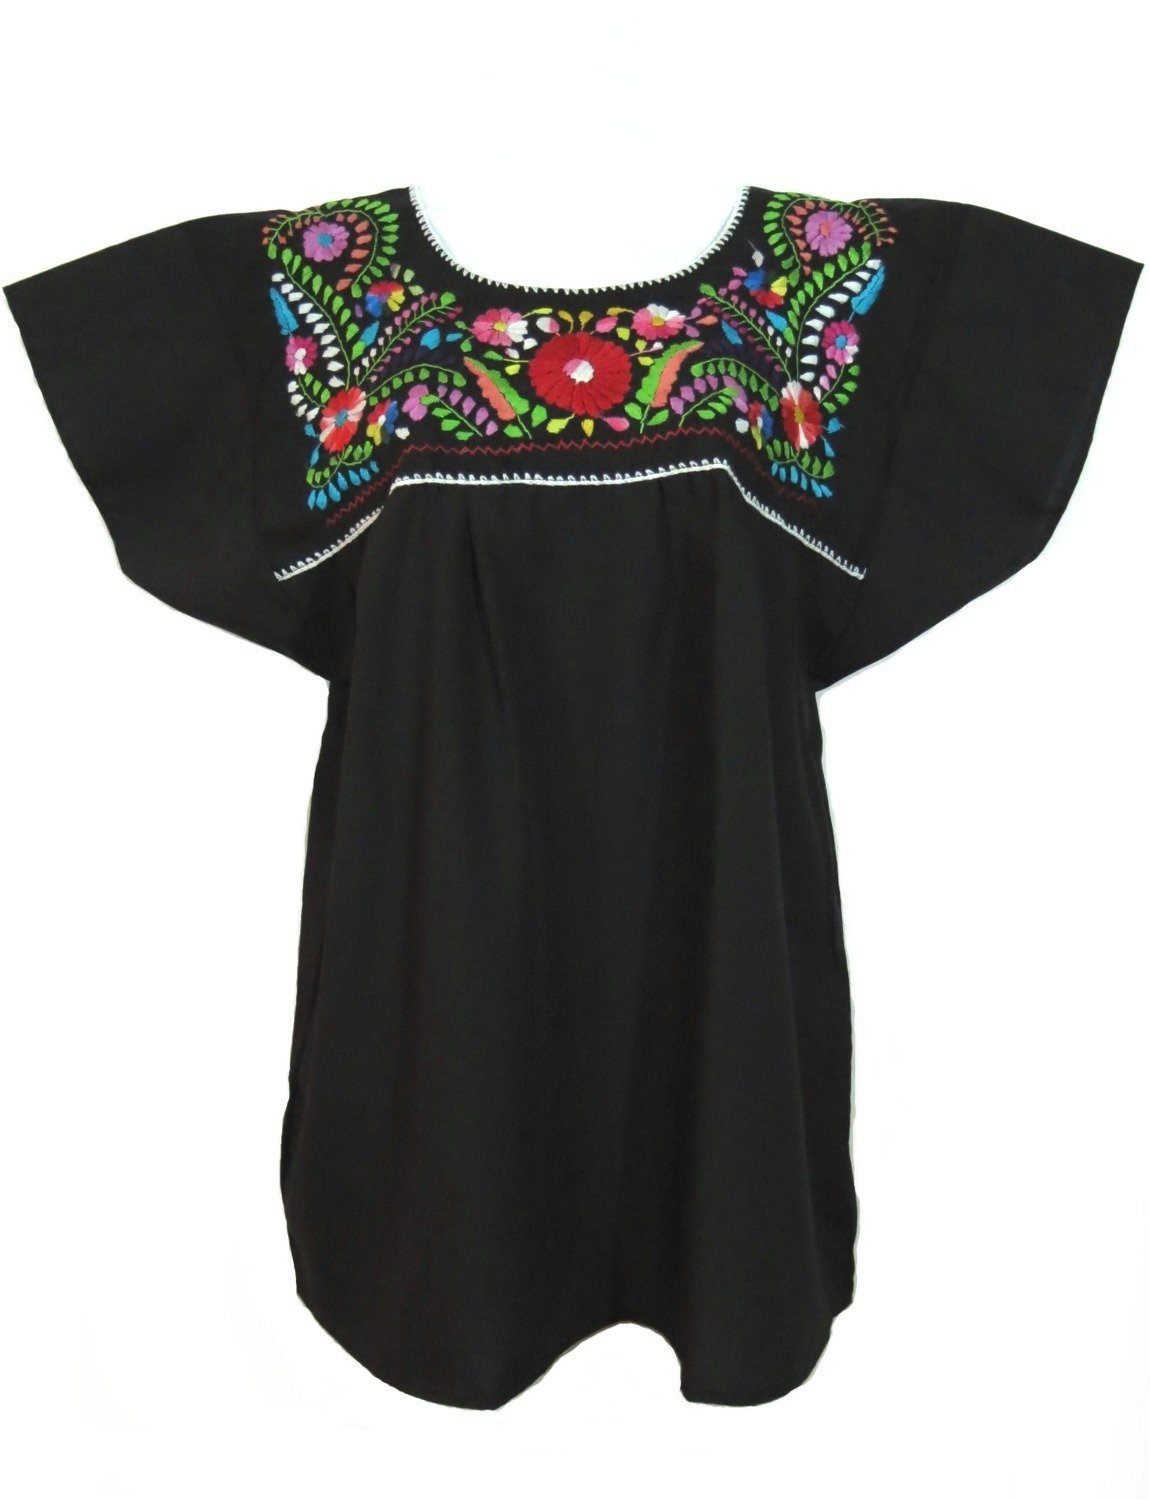 Women's Traditional Black Mexican Puebla Blouse - DeluxeAdultCostumes.com